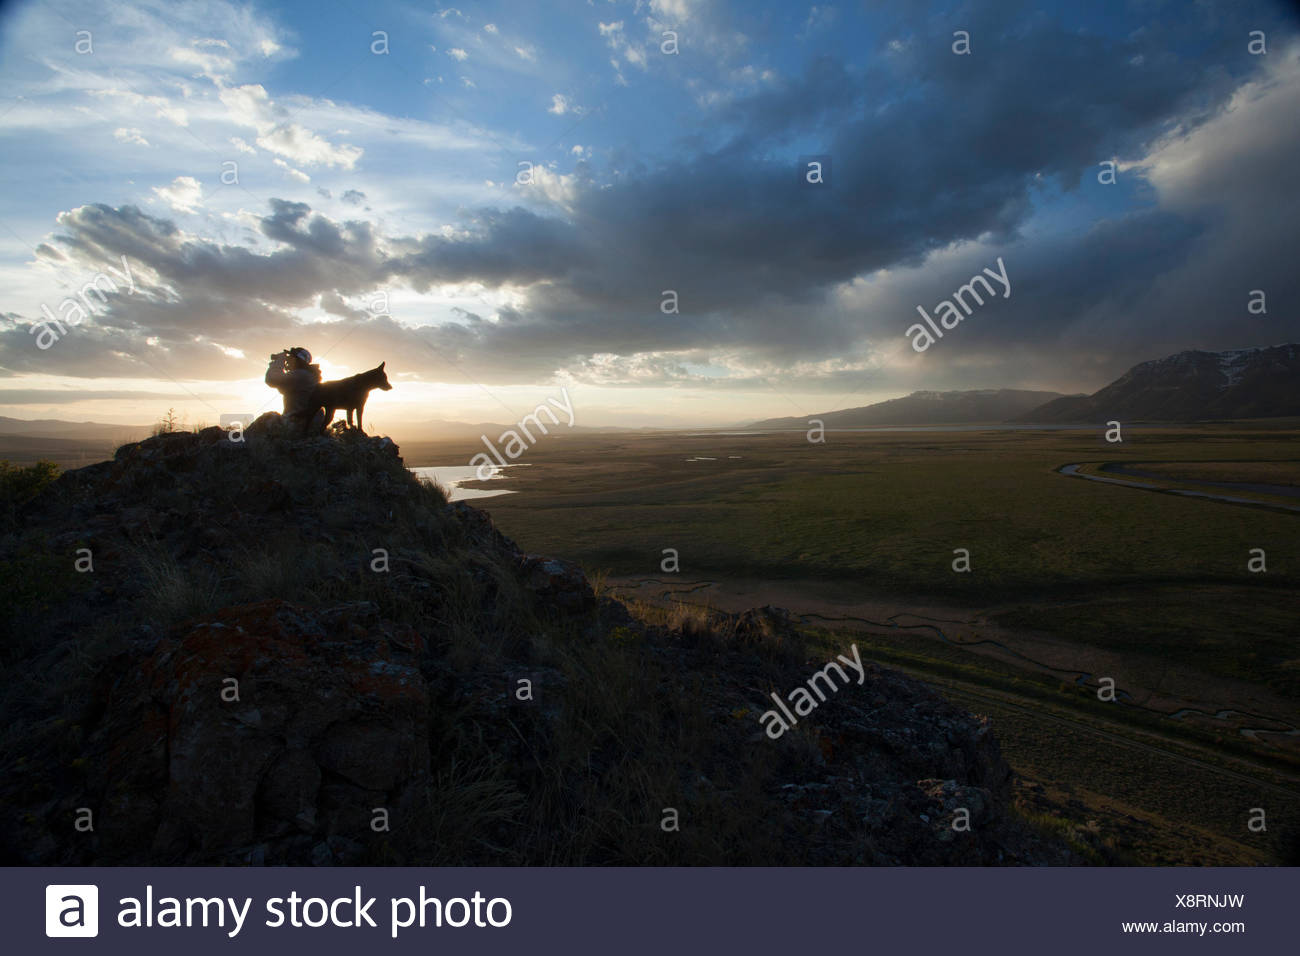 A wildlife tour guide in the Greater Yellowstone Ecosystem takes in the sunset with his dog. - Stock Image